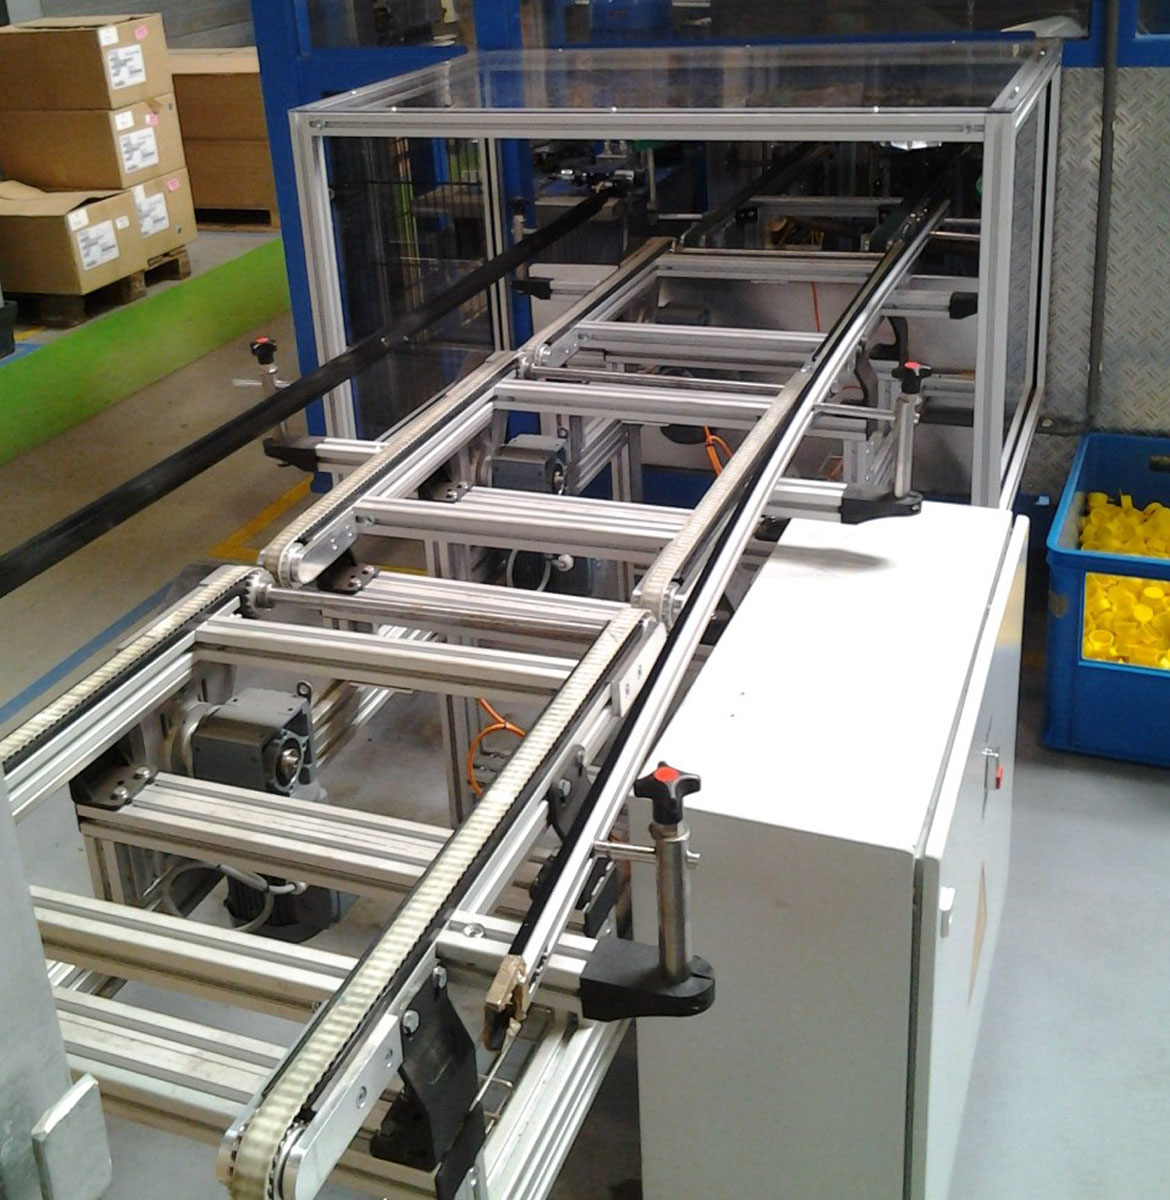 Timing Belt Conveyors Multiple Systems Easy Drive Motor Belts For Dimensional Stability And Precise Guidance